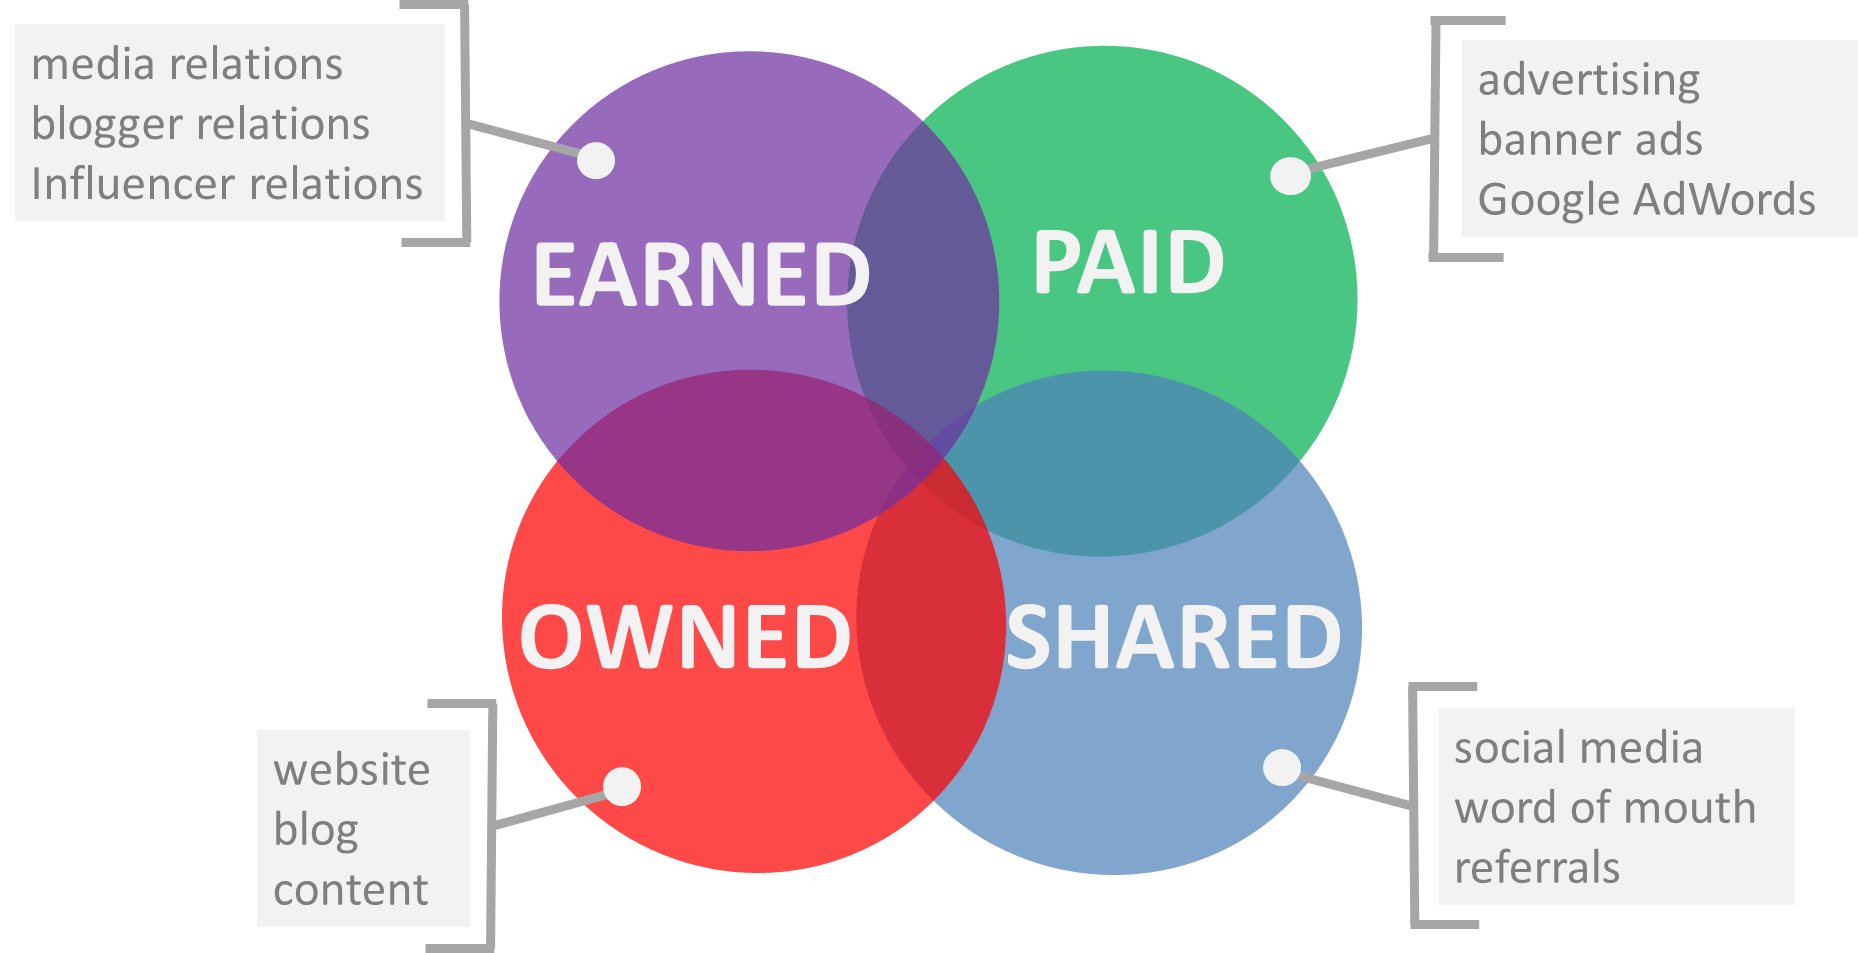 Sample Marketing Plan With Paid Owned Earned And Shared Media